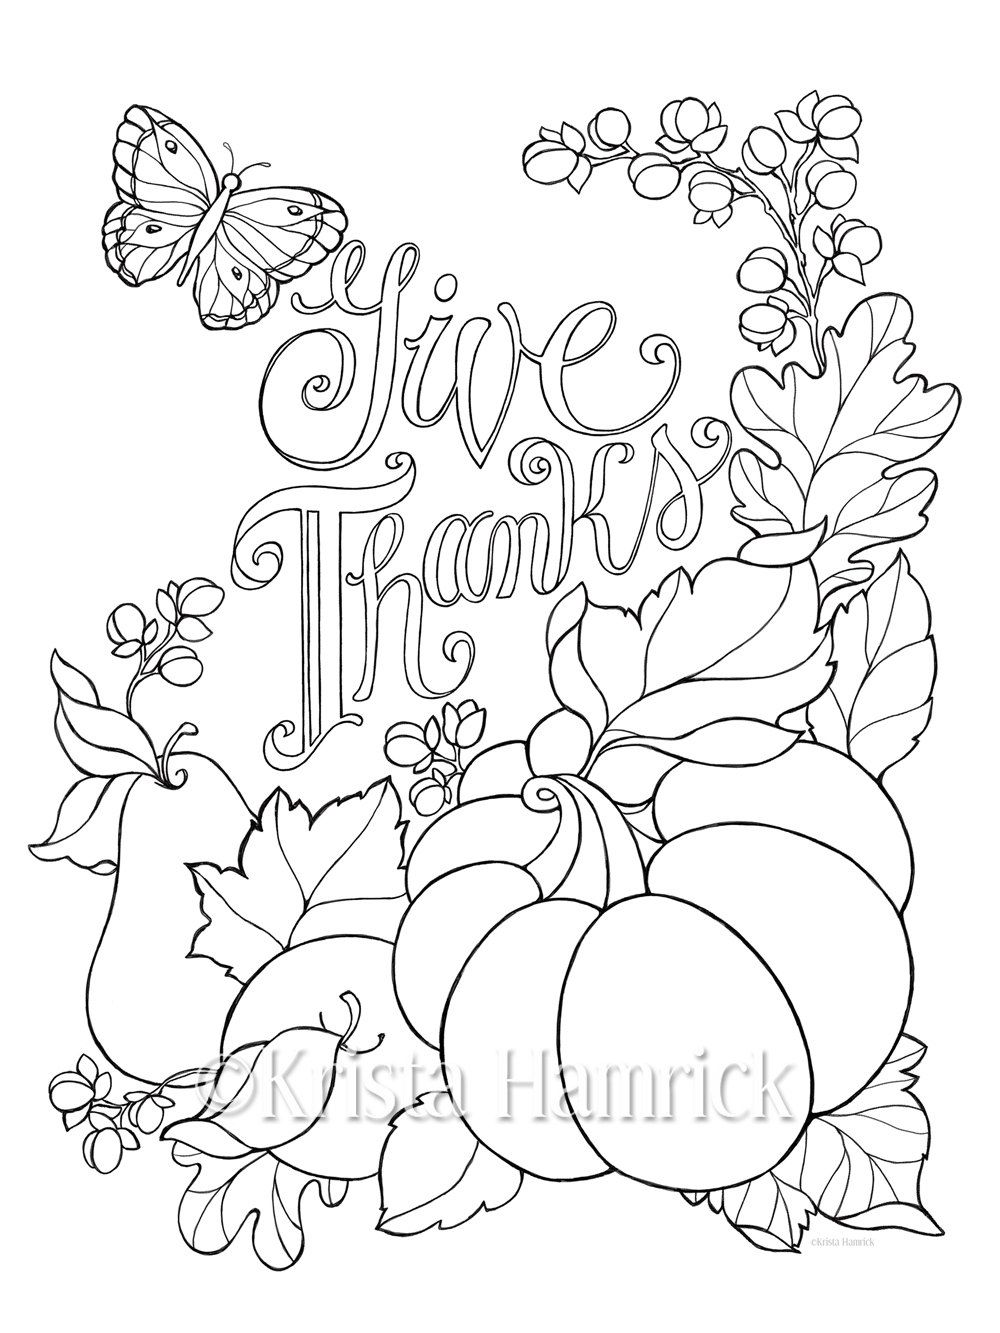 Give Thanks coloring page in two sizes 85X11 and Bible